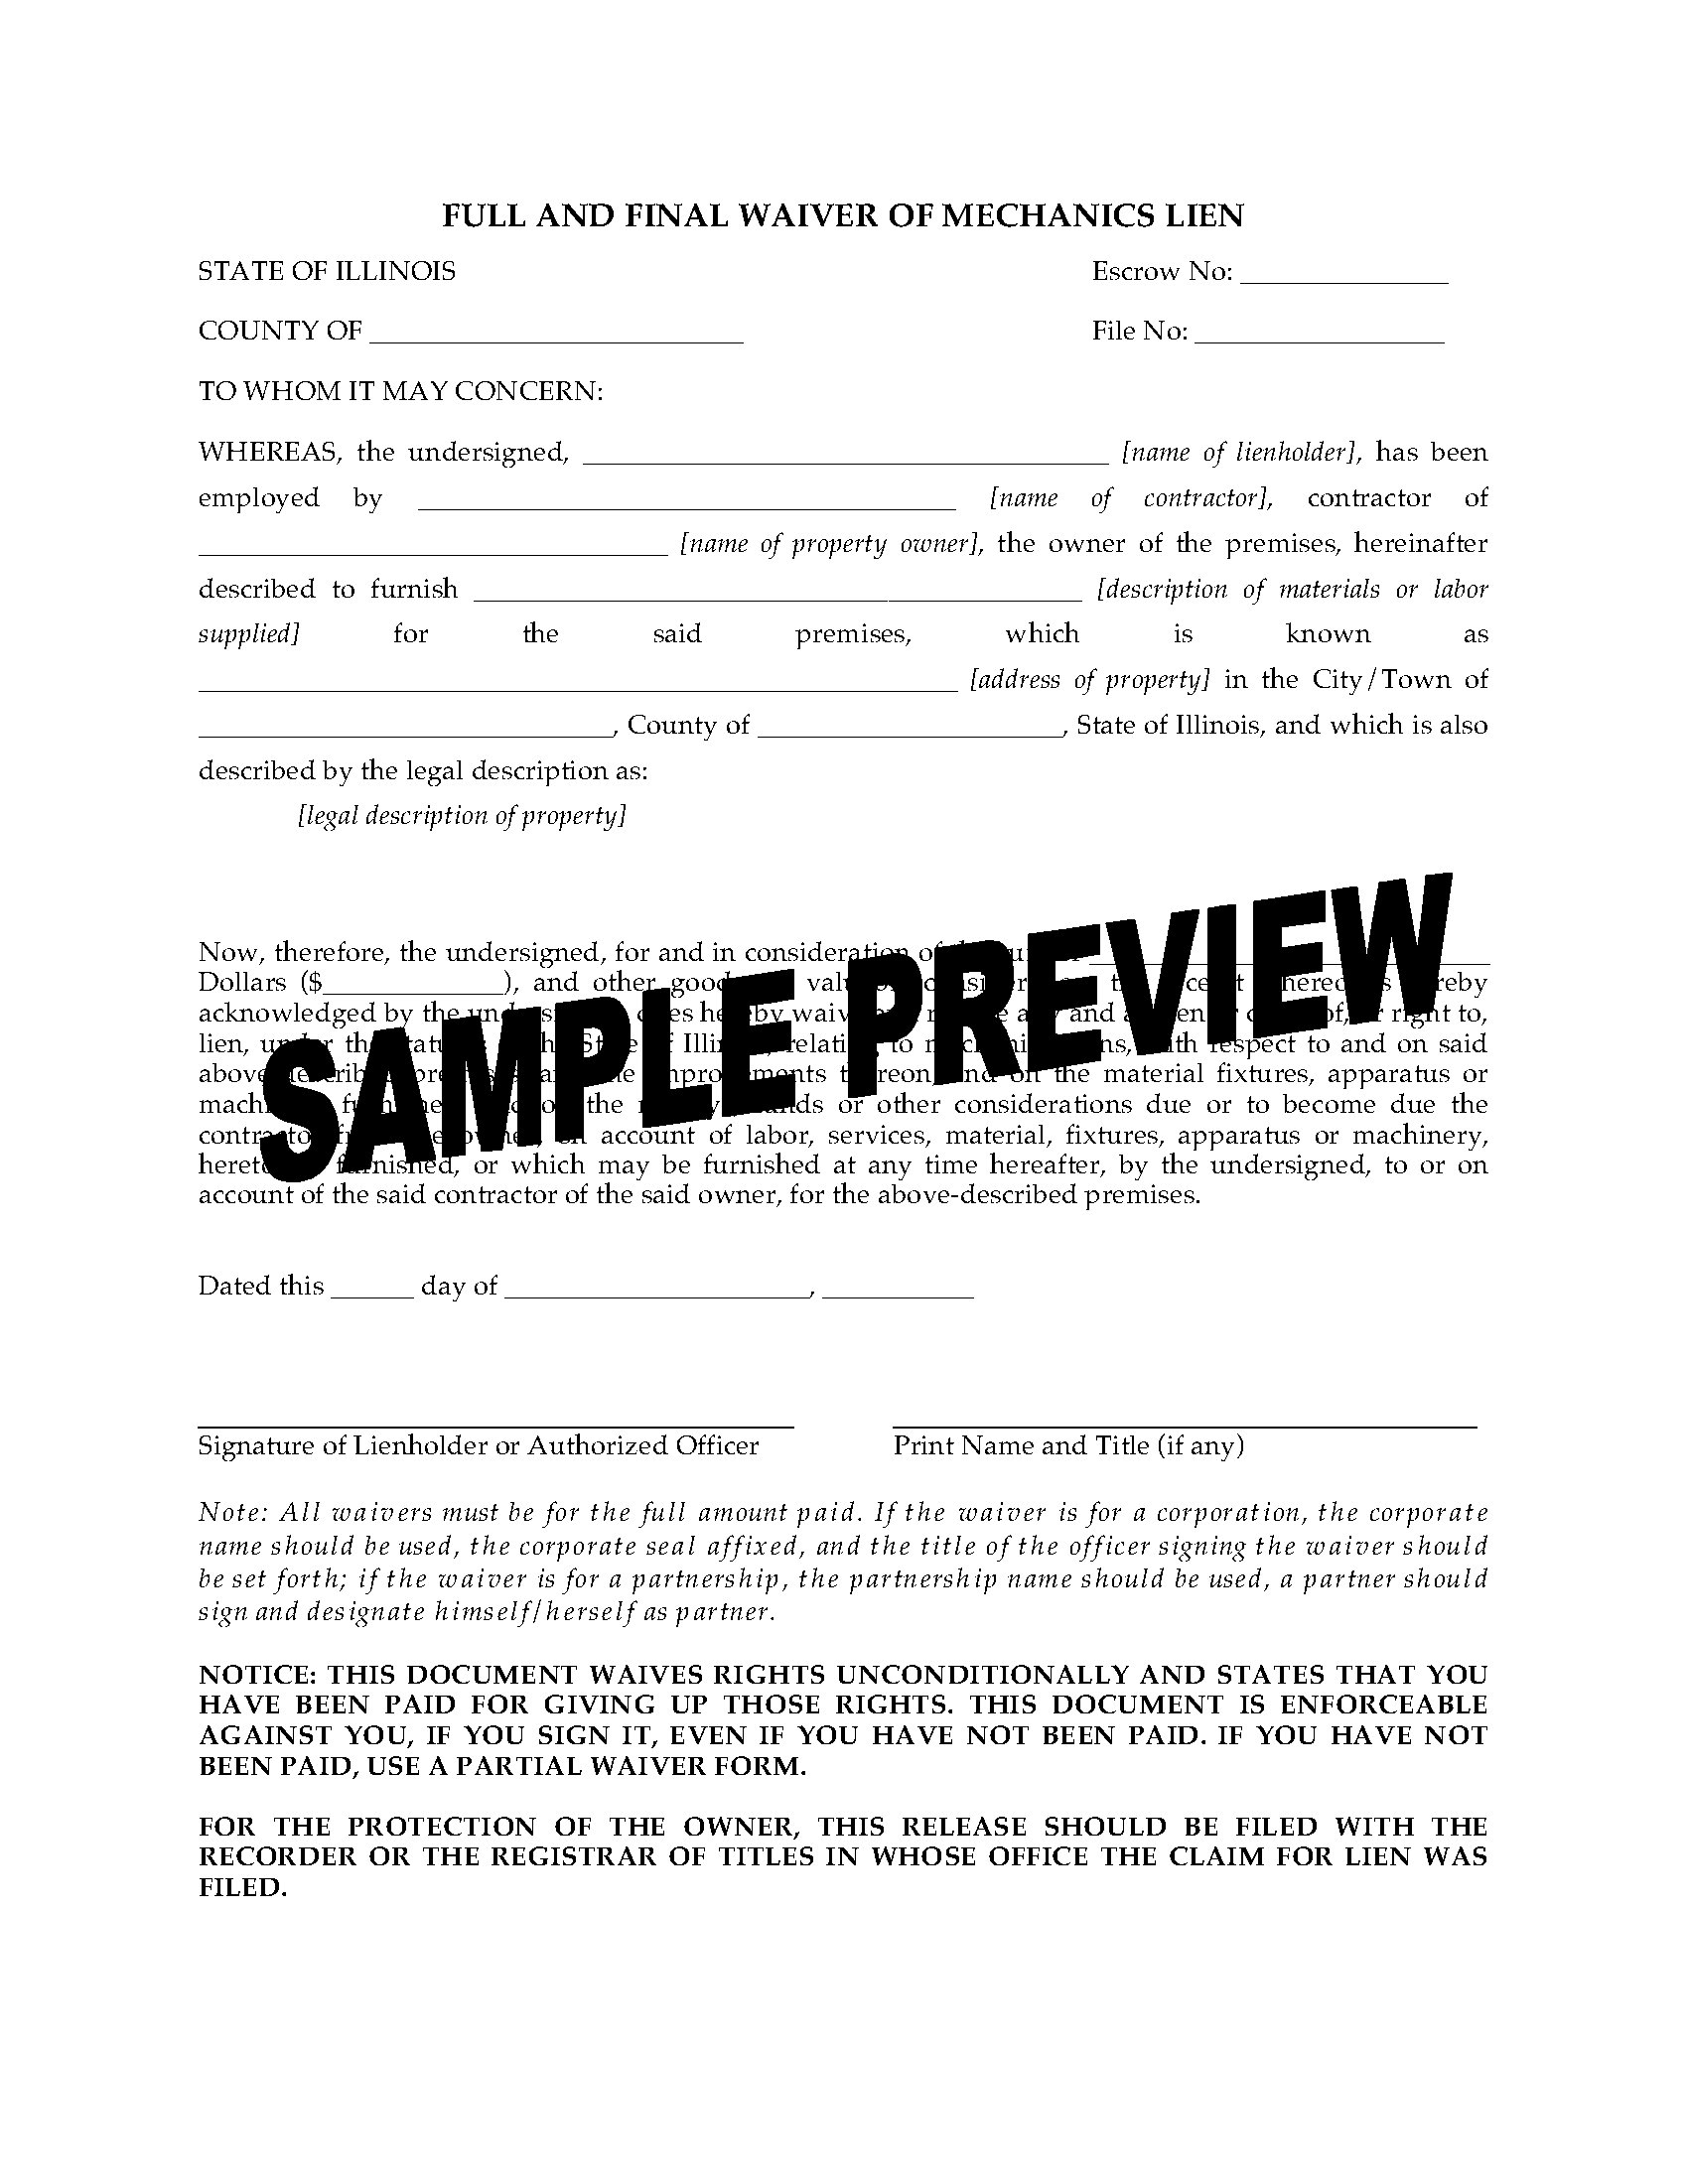 Mechanics Lien Letter Template - Subcontractorter Intent Template the Bravo Mechanics Lien